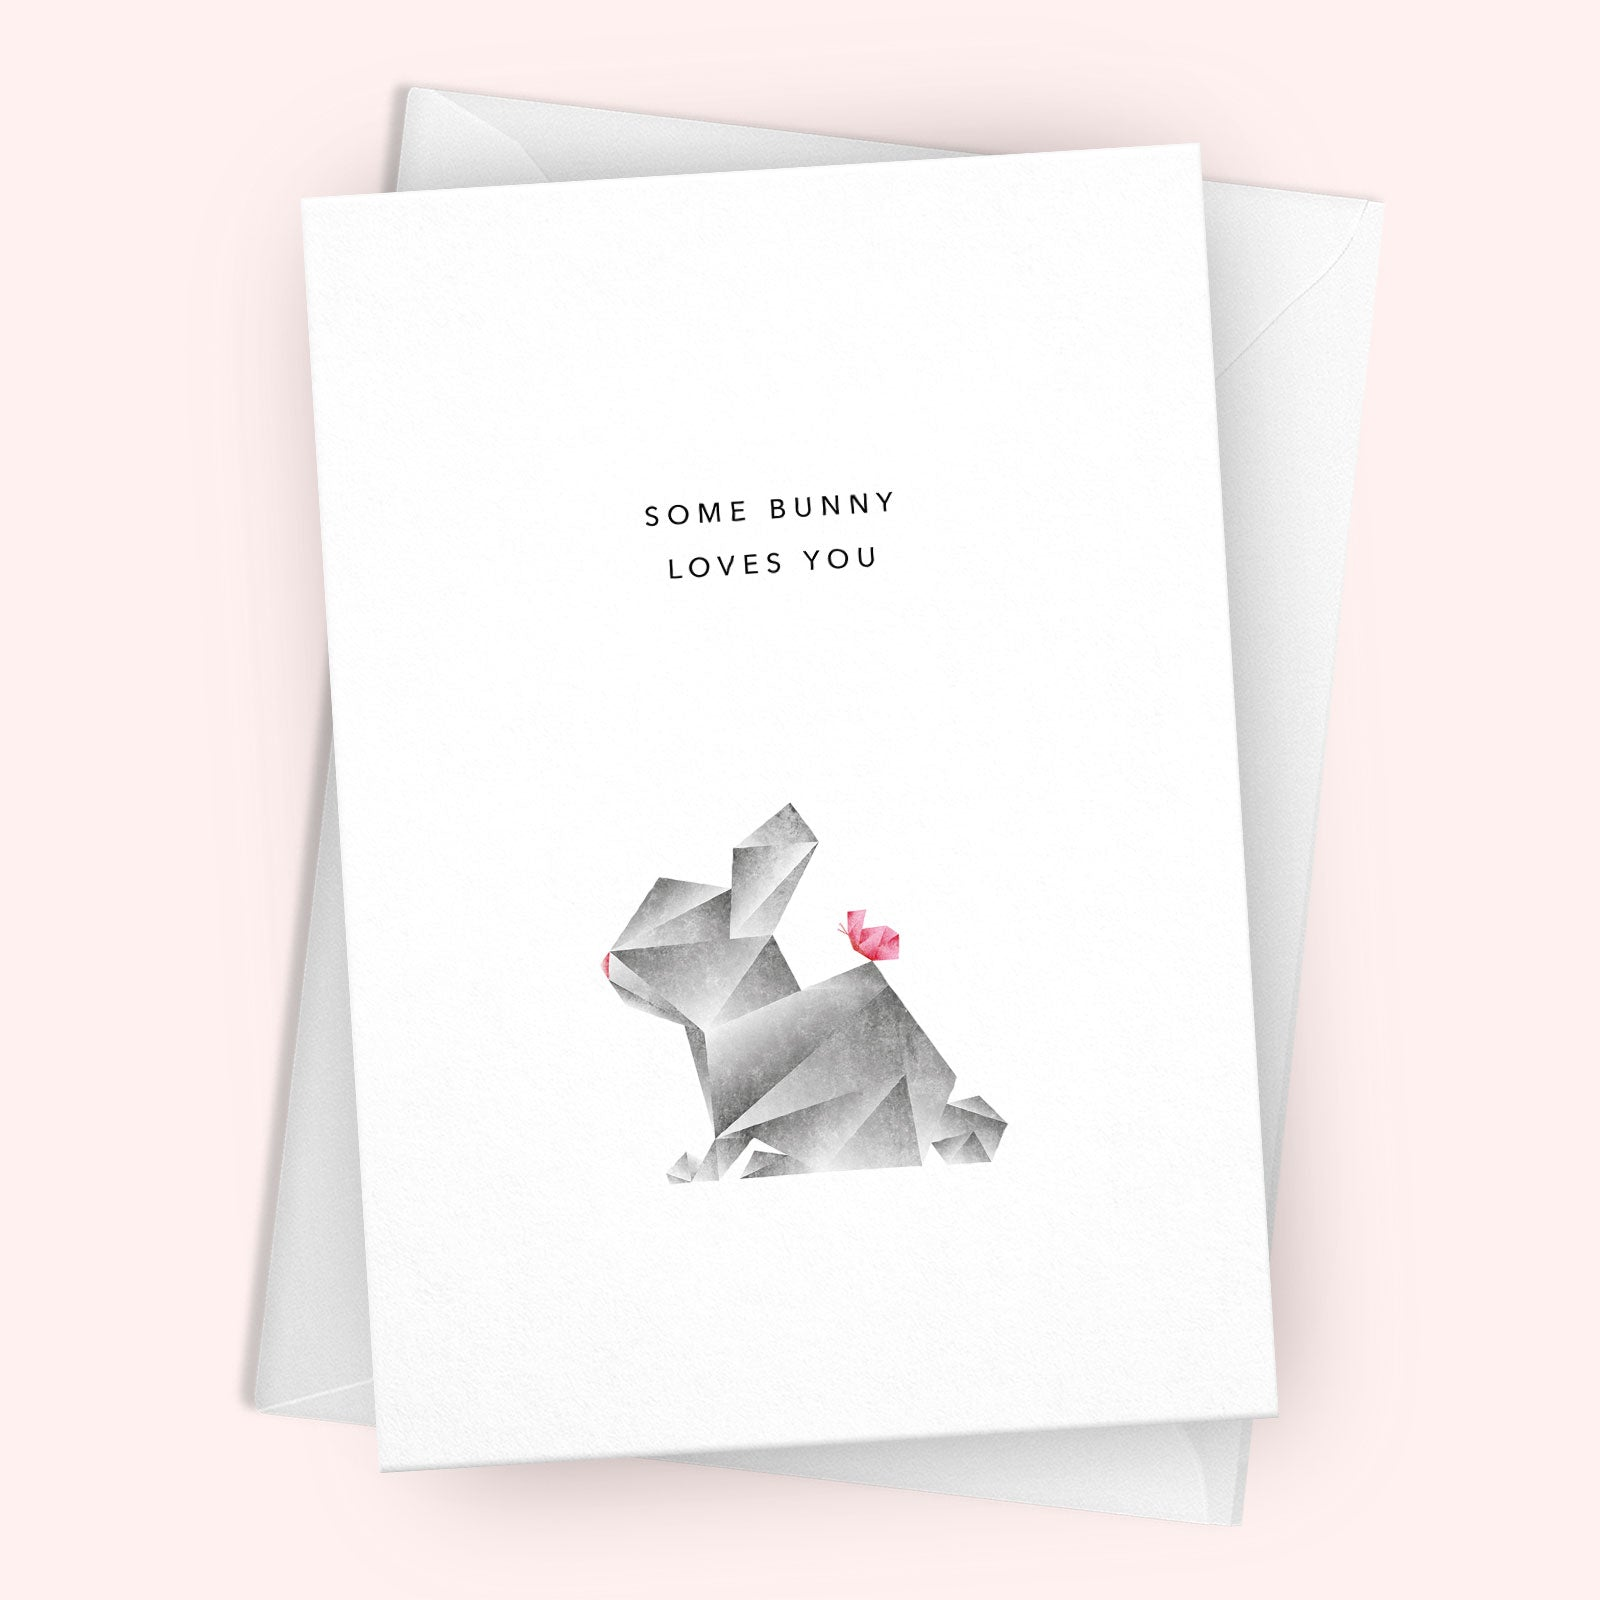 'Some Bunny Loves You' Greetings Card